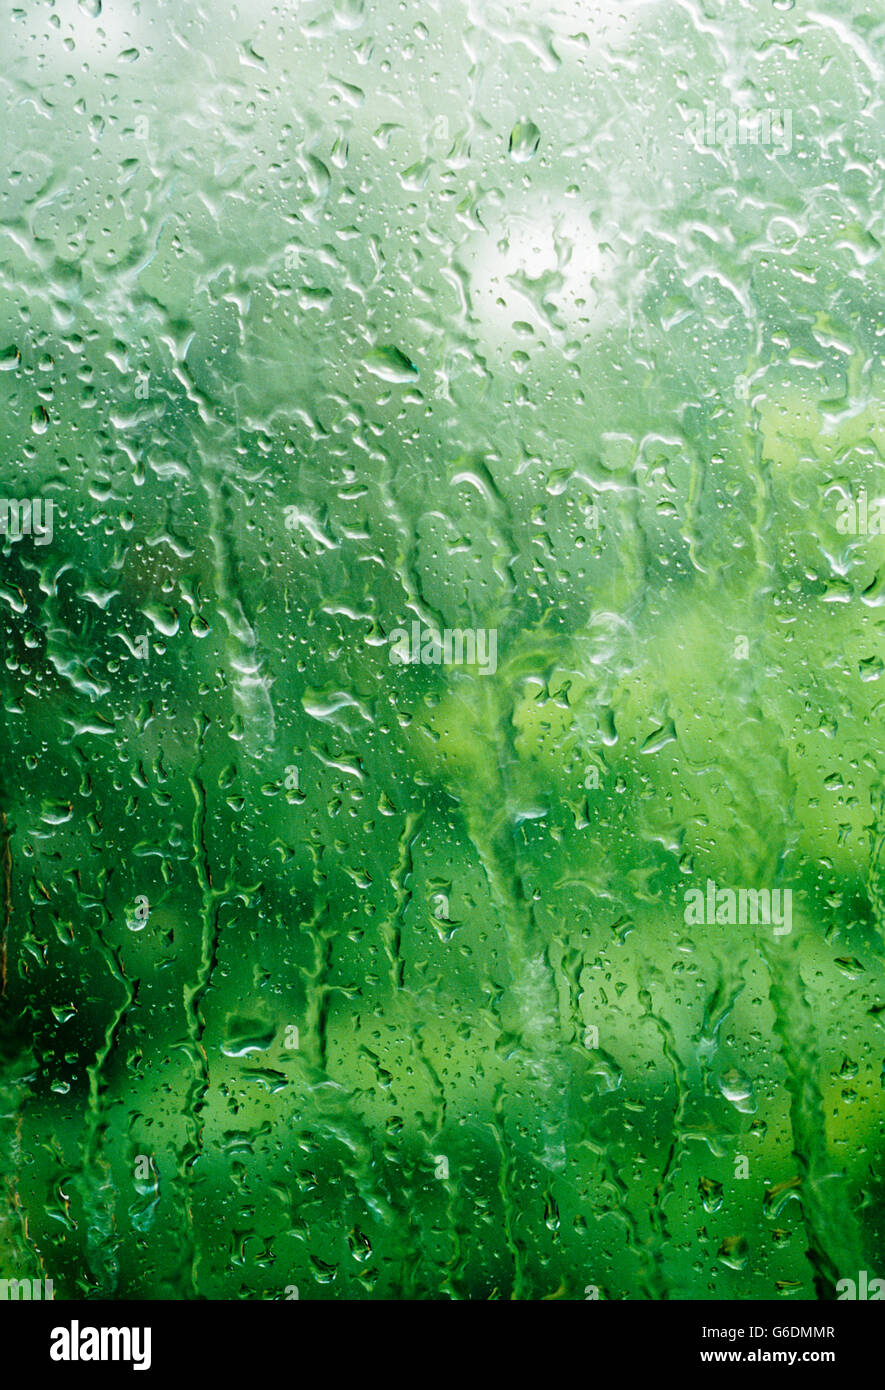 Water droplets beaded up on a glass window in the summer - Stock Image